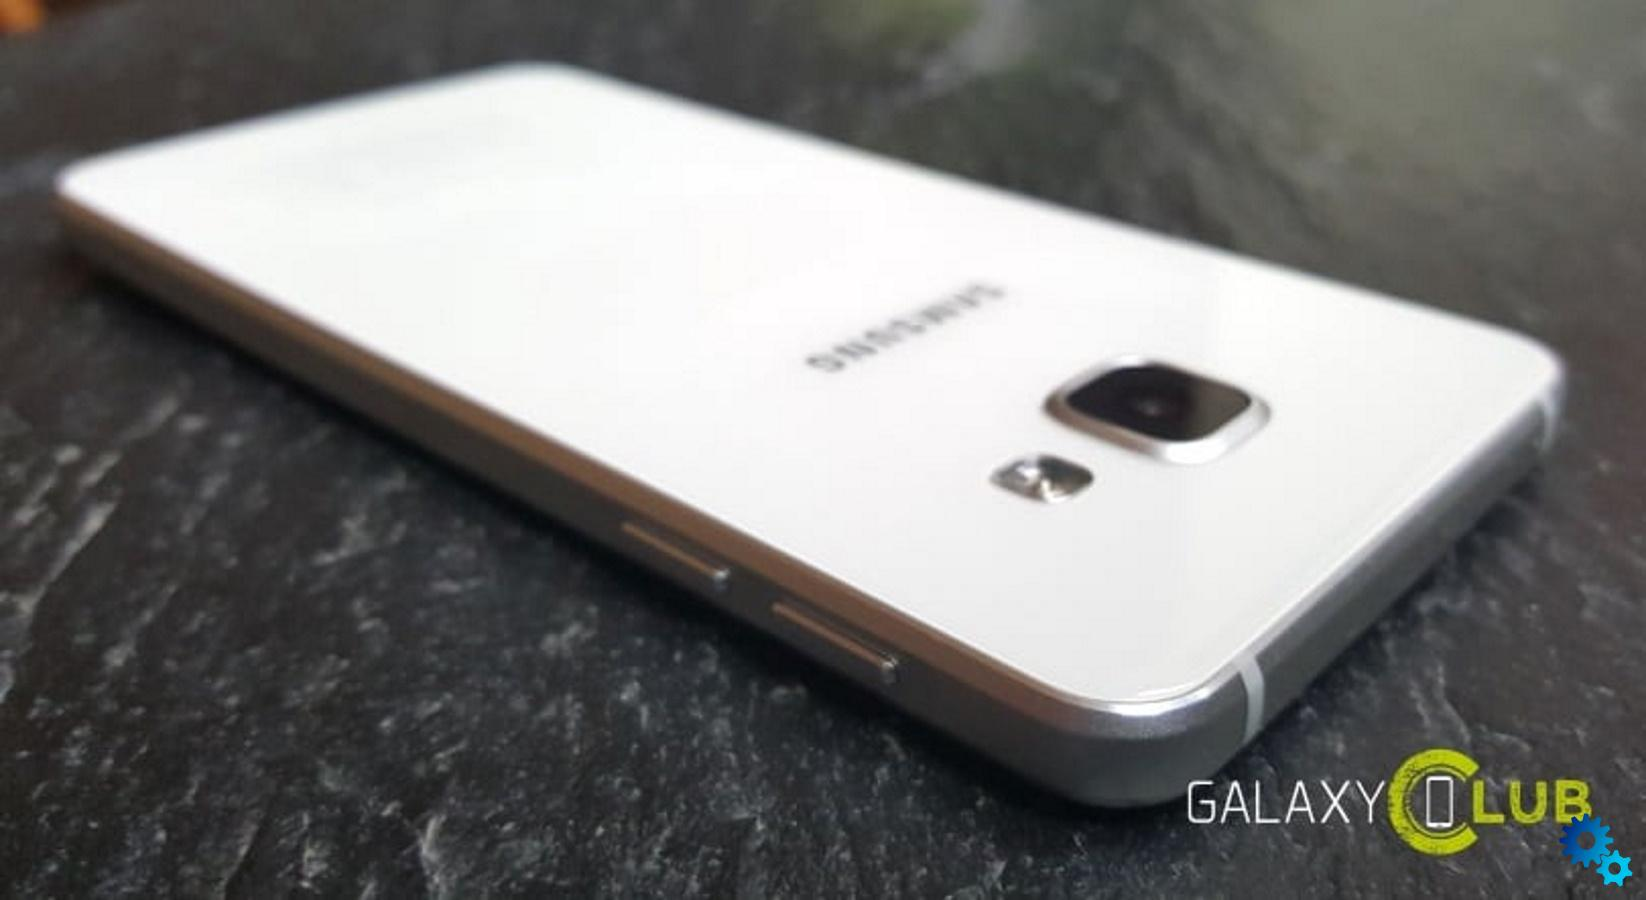 More updates: Samsung Galaxy A8 and Galaxy A3 (2016)